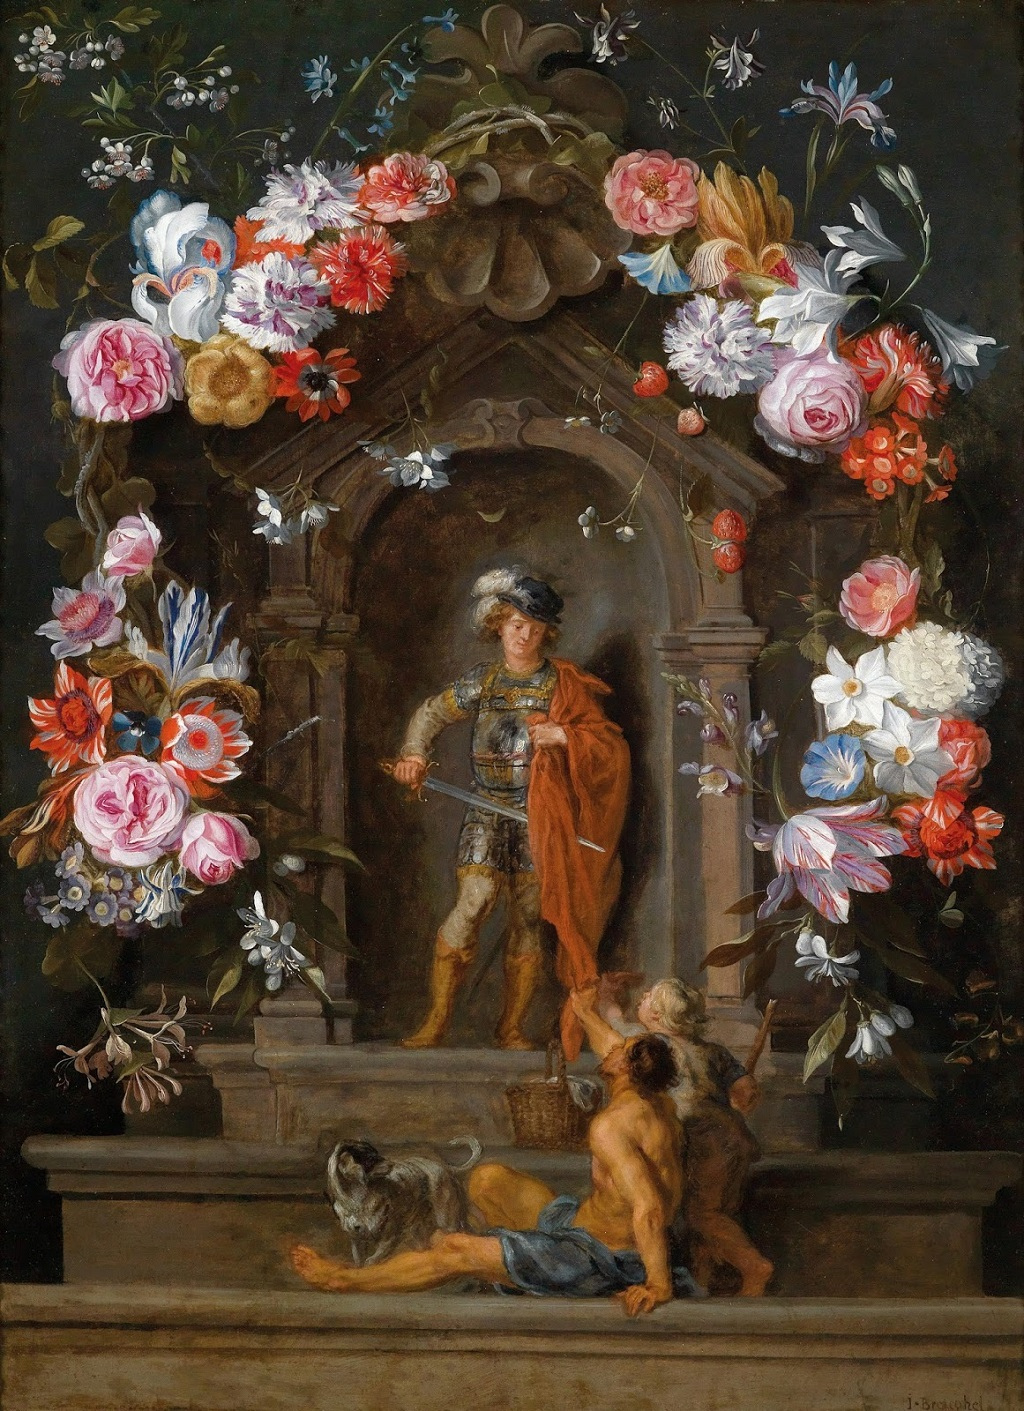 5 Jan Pieter Brueghel or Jan Pieter Breughel (1628-1664) — Pair of Flower Garlands with San Martin and Magdalena.jpg